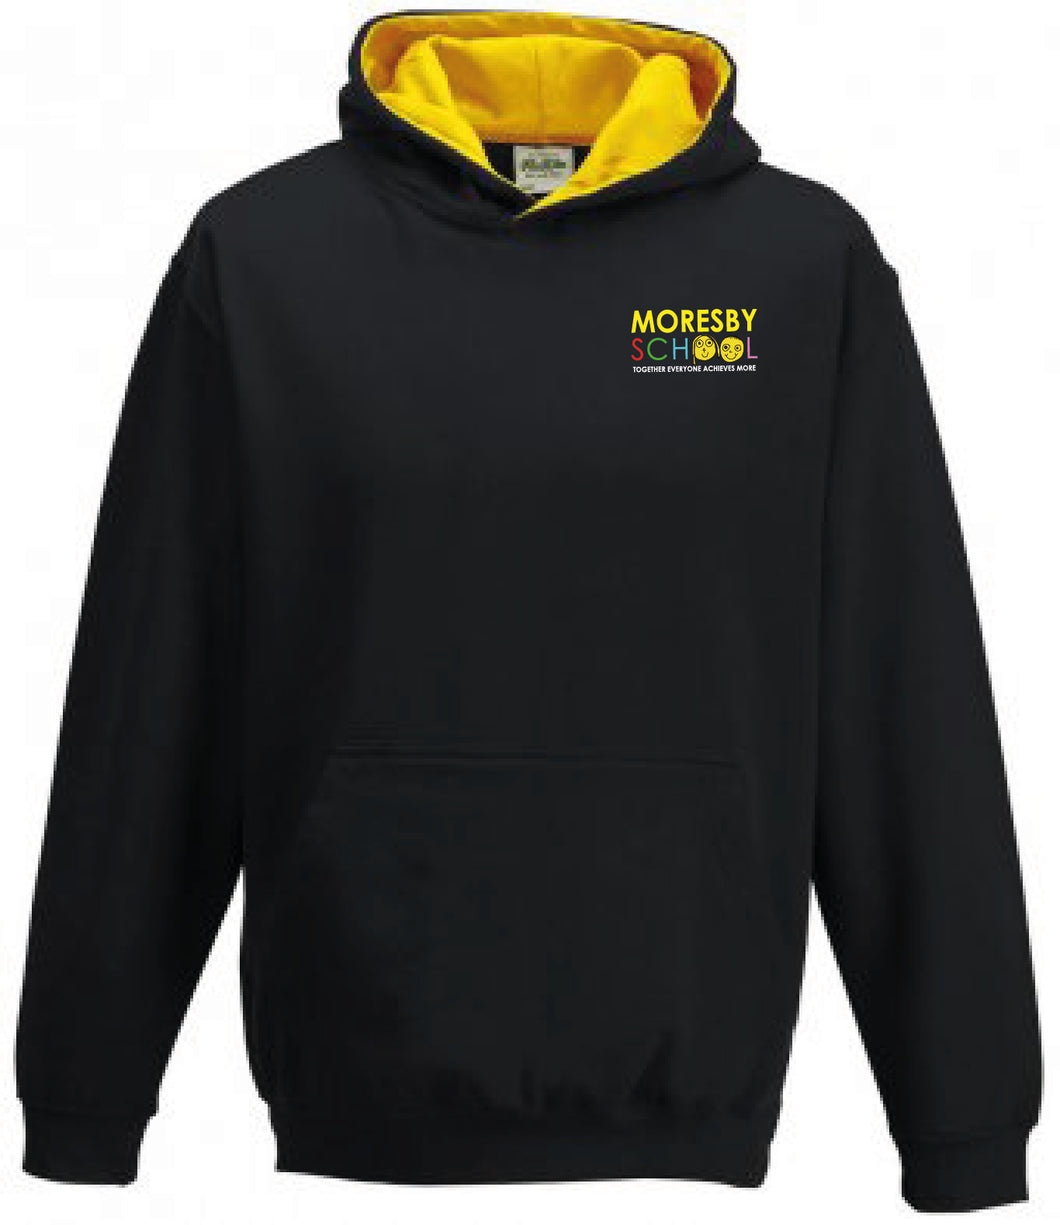 Moresby School - Child's Winter P.E Hoodie